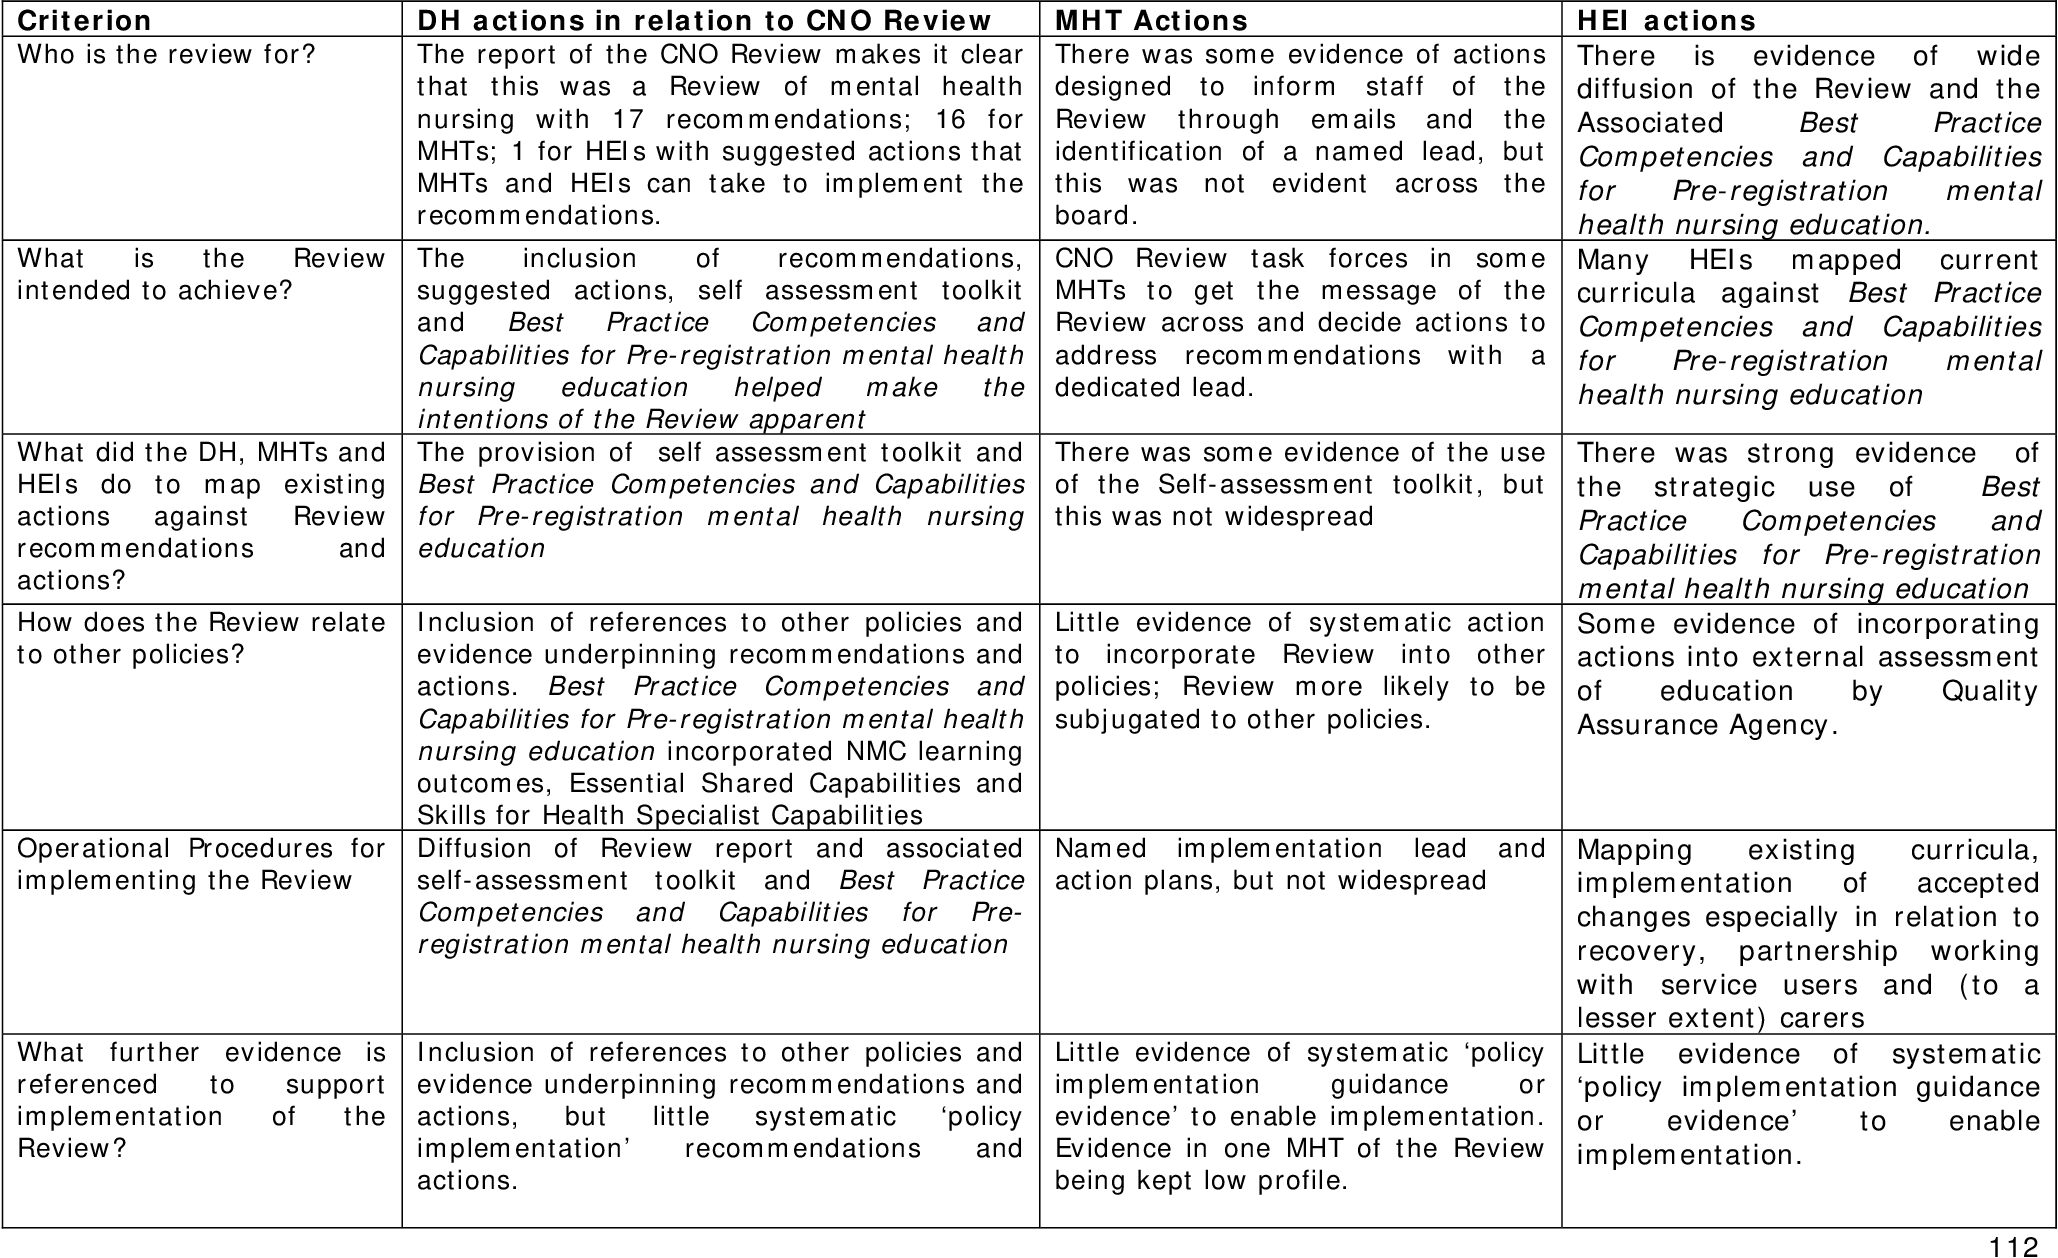 Table 24 from Evaluation of the Chief Nursing Officer's Review of